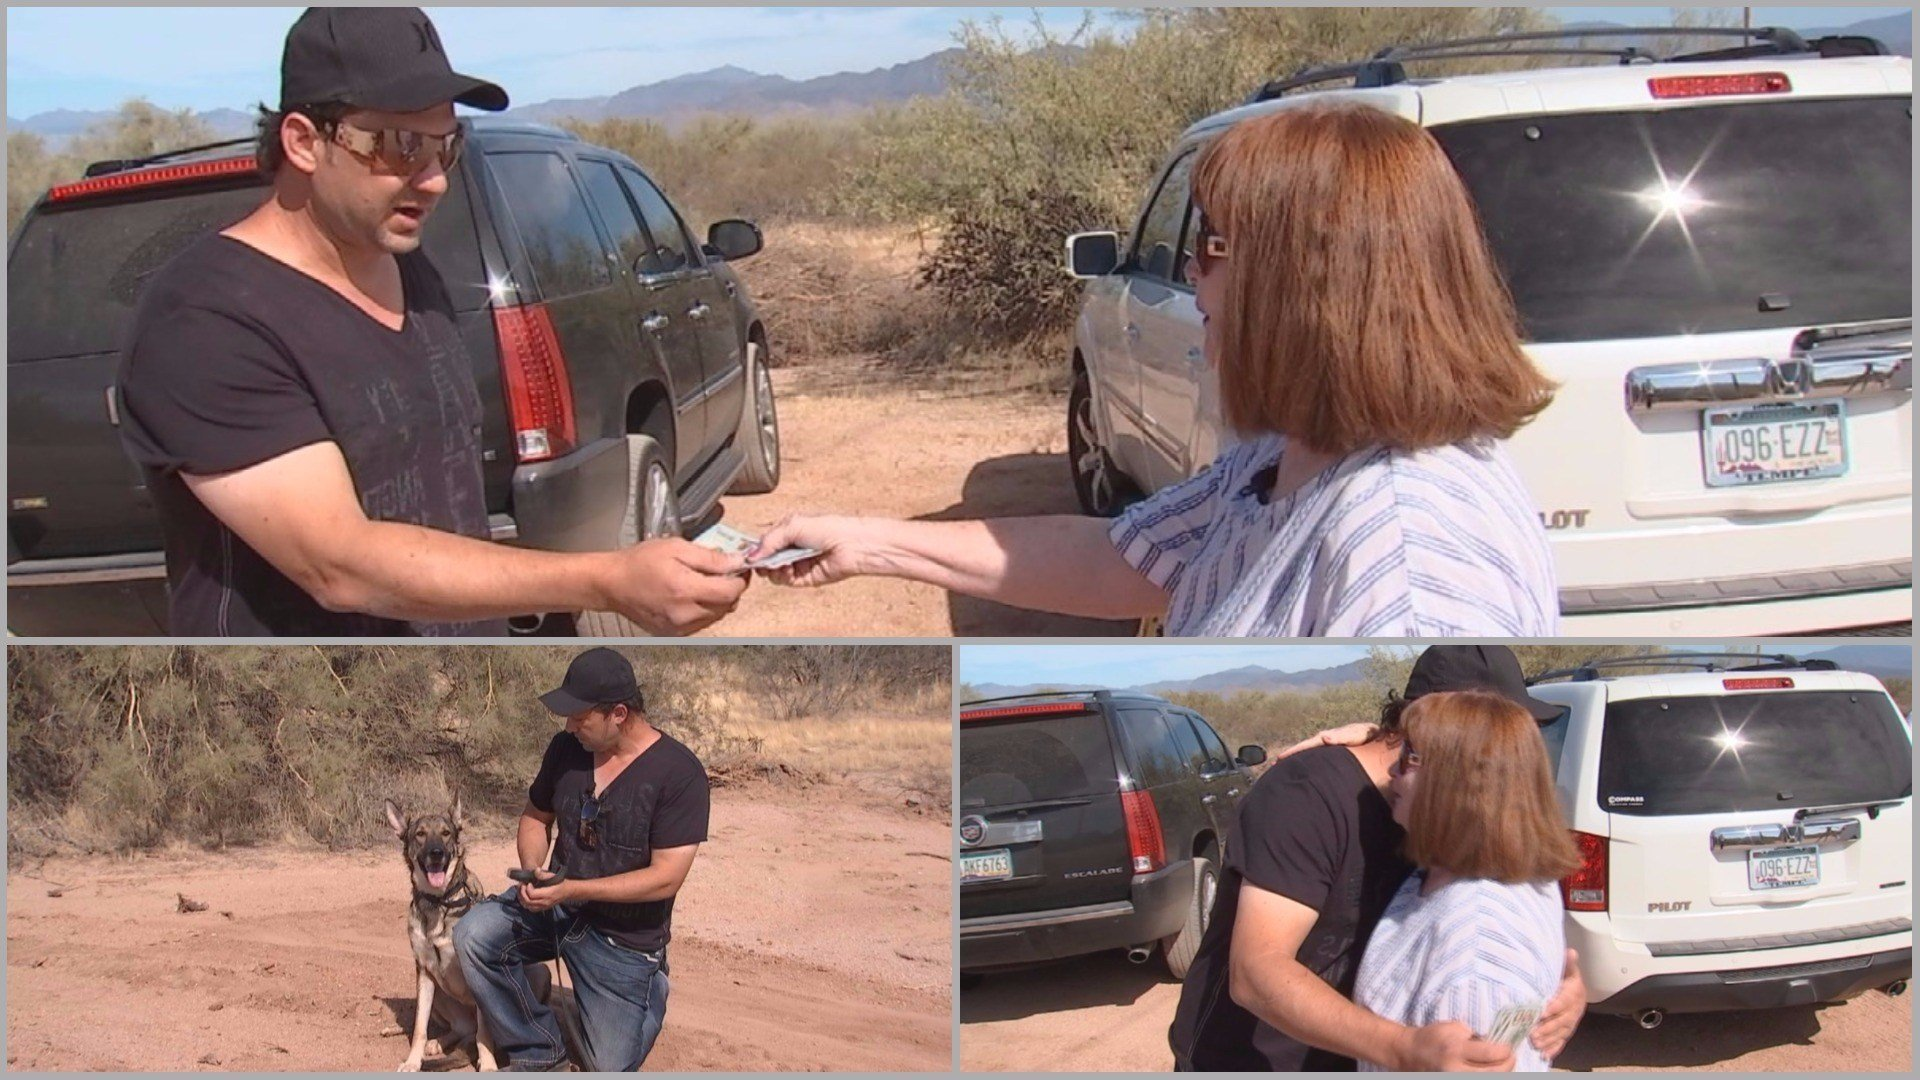 Bev Douwstra surprised Domenic Anthony with $500 from CBS 5's Pay It Forward. (Source: 3TV and CBS 5)